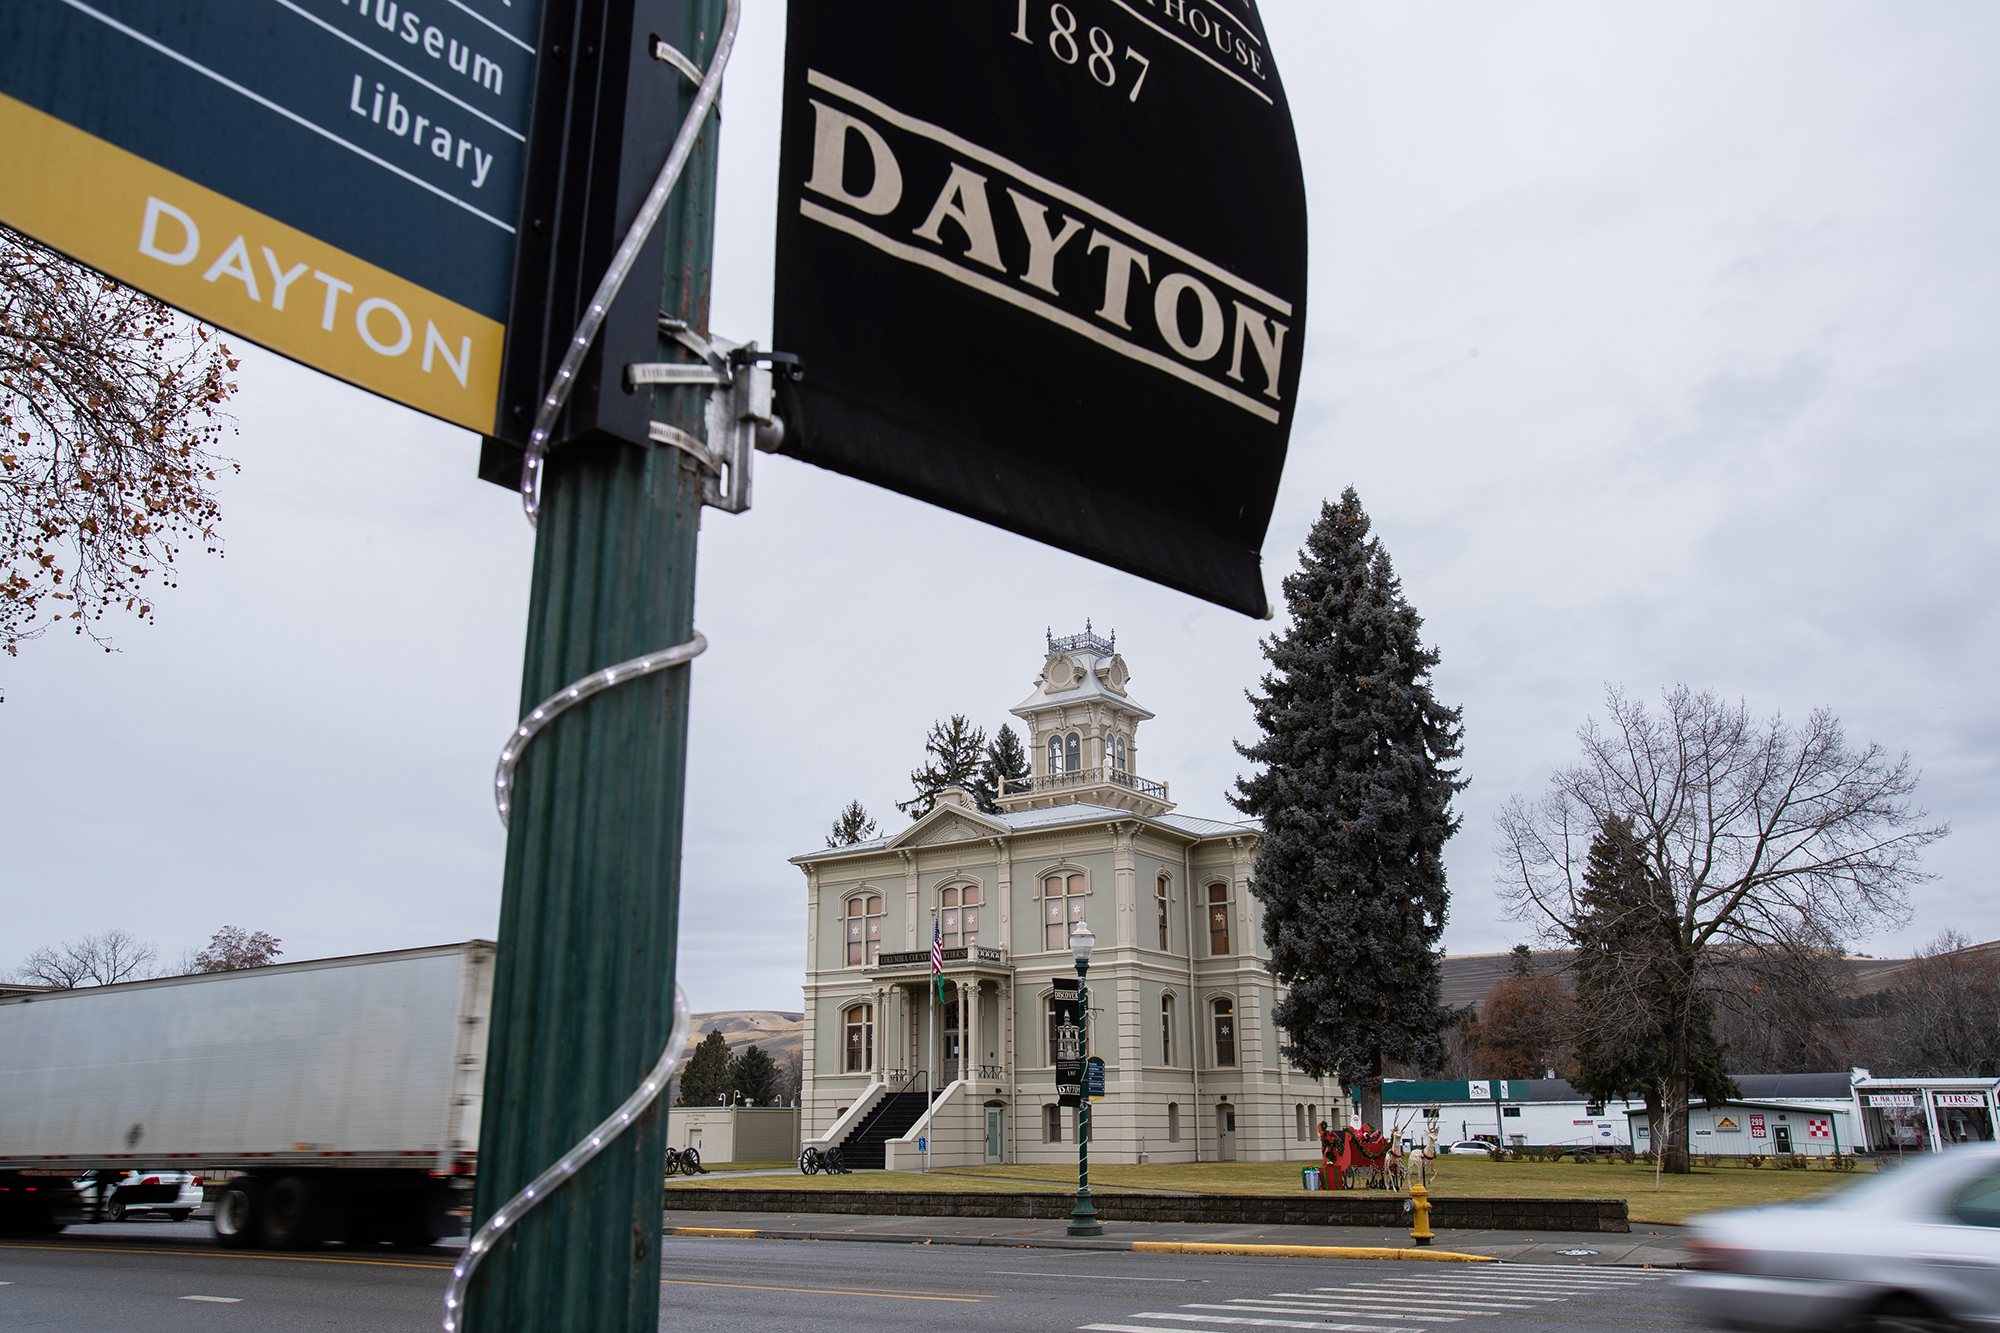 A Dayton city flag flies in front of the Columbia County courthouse